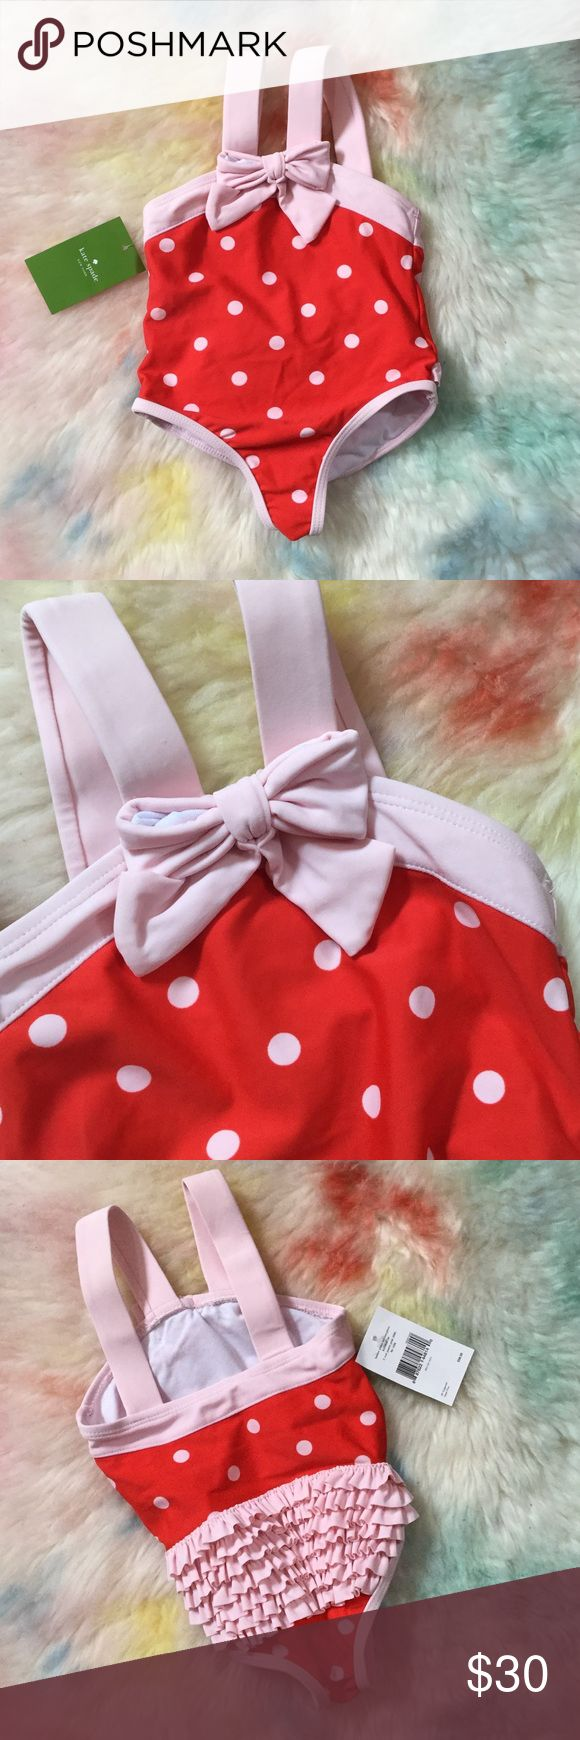 722🐰🖤 Kate's Spade Baby Polka Dot One Piece Red/ pastry pink combo , ruffle back detail , no flaws , new with tags, 95% polyester 5% elastane fully lined kate spade Swim One Piece